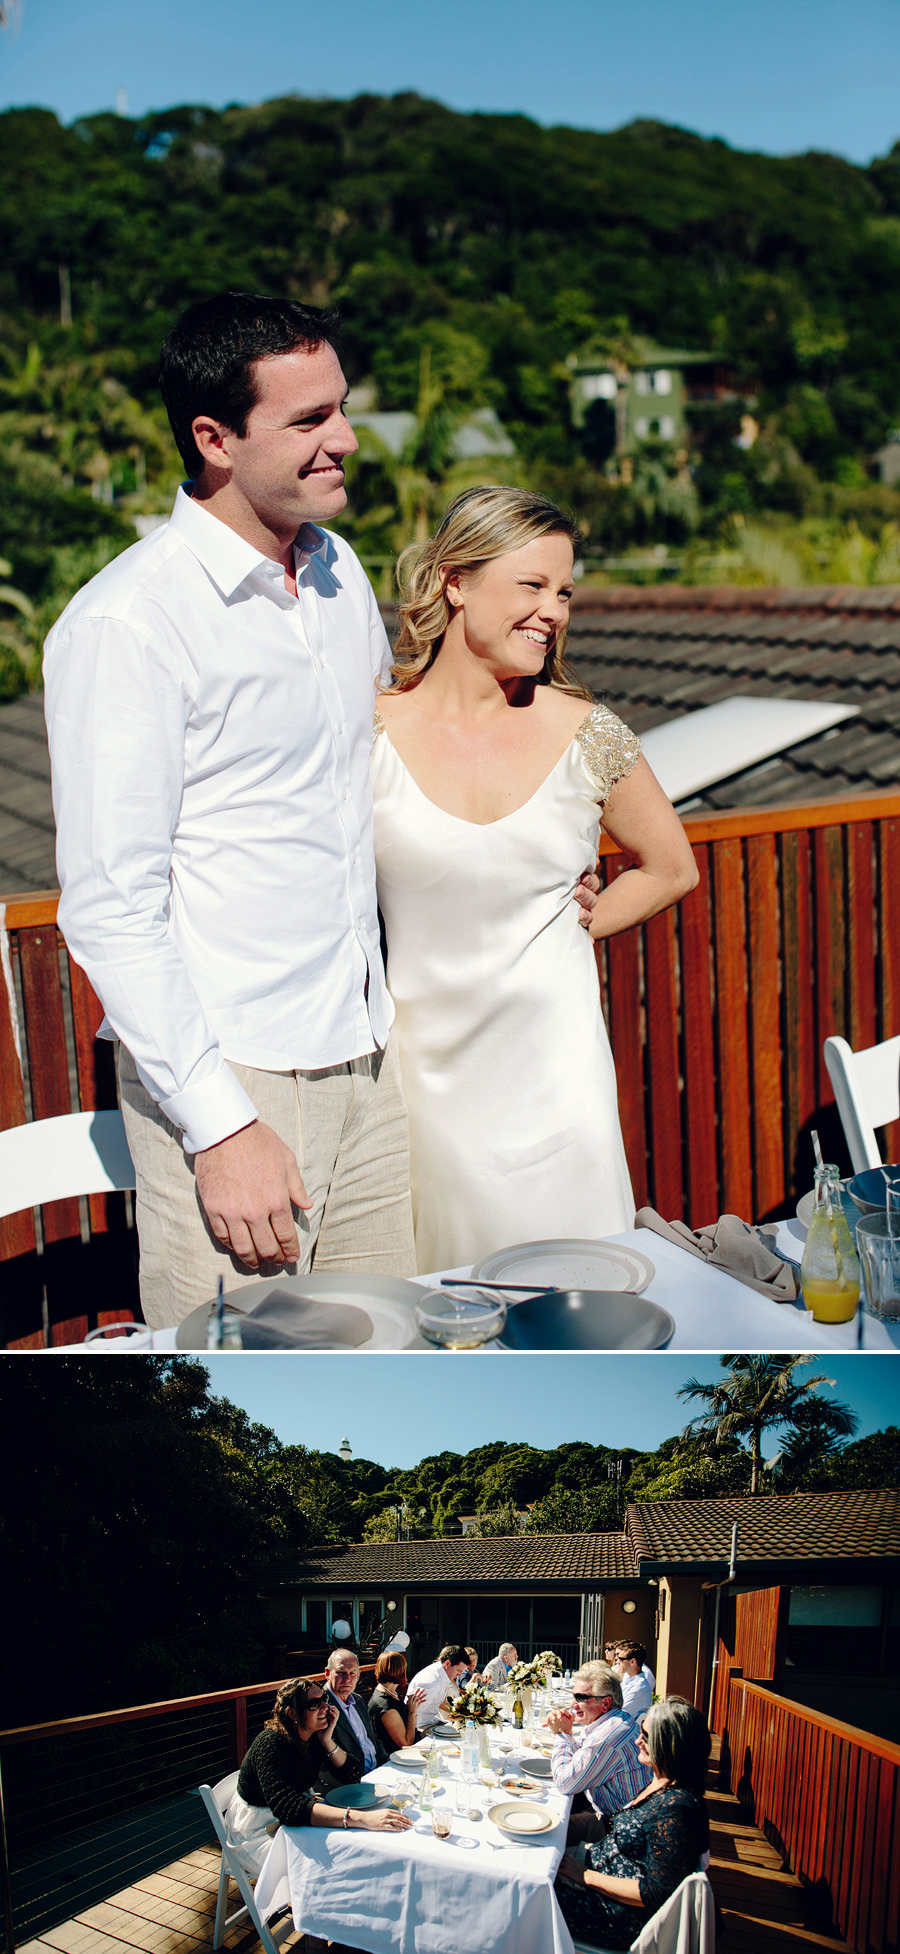 Byron Bay Wedding Photographer: Bride & Groom speech